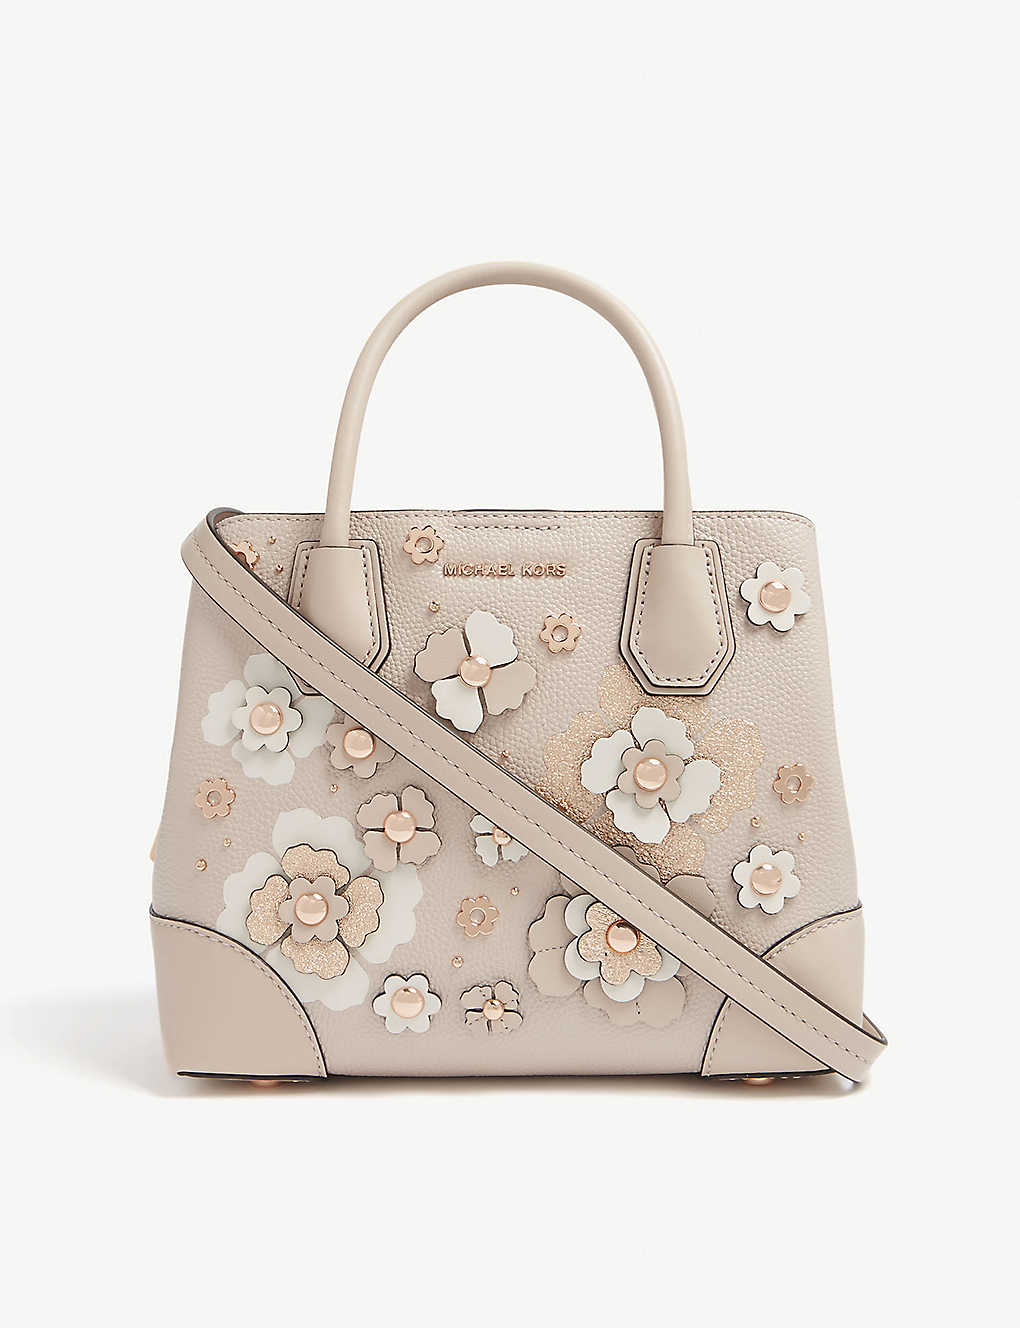 062ad6e3308e1c MICHAEL MICHAEL KORS - Mercer floral embellished leather tote ...